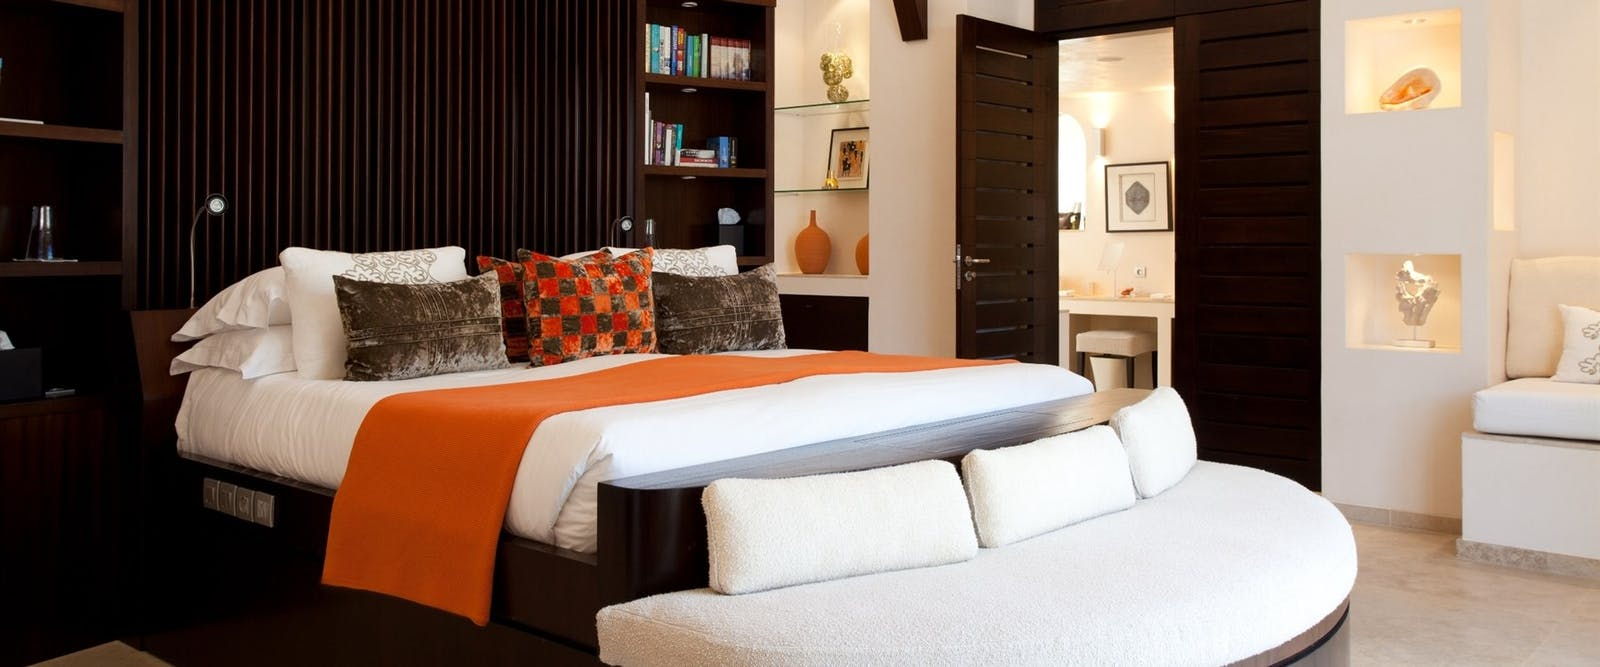 Bedroom at Nina Villa at Rockstar & Nina at Eden Rock